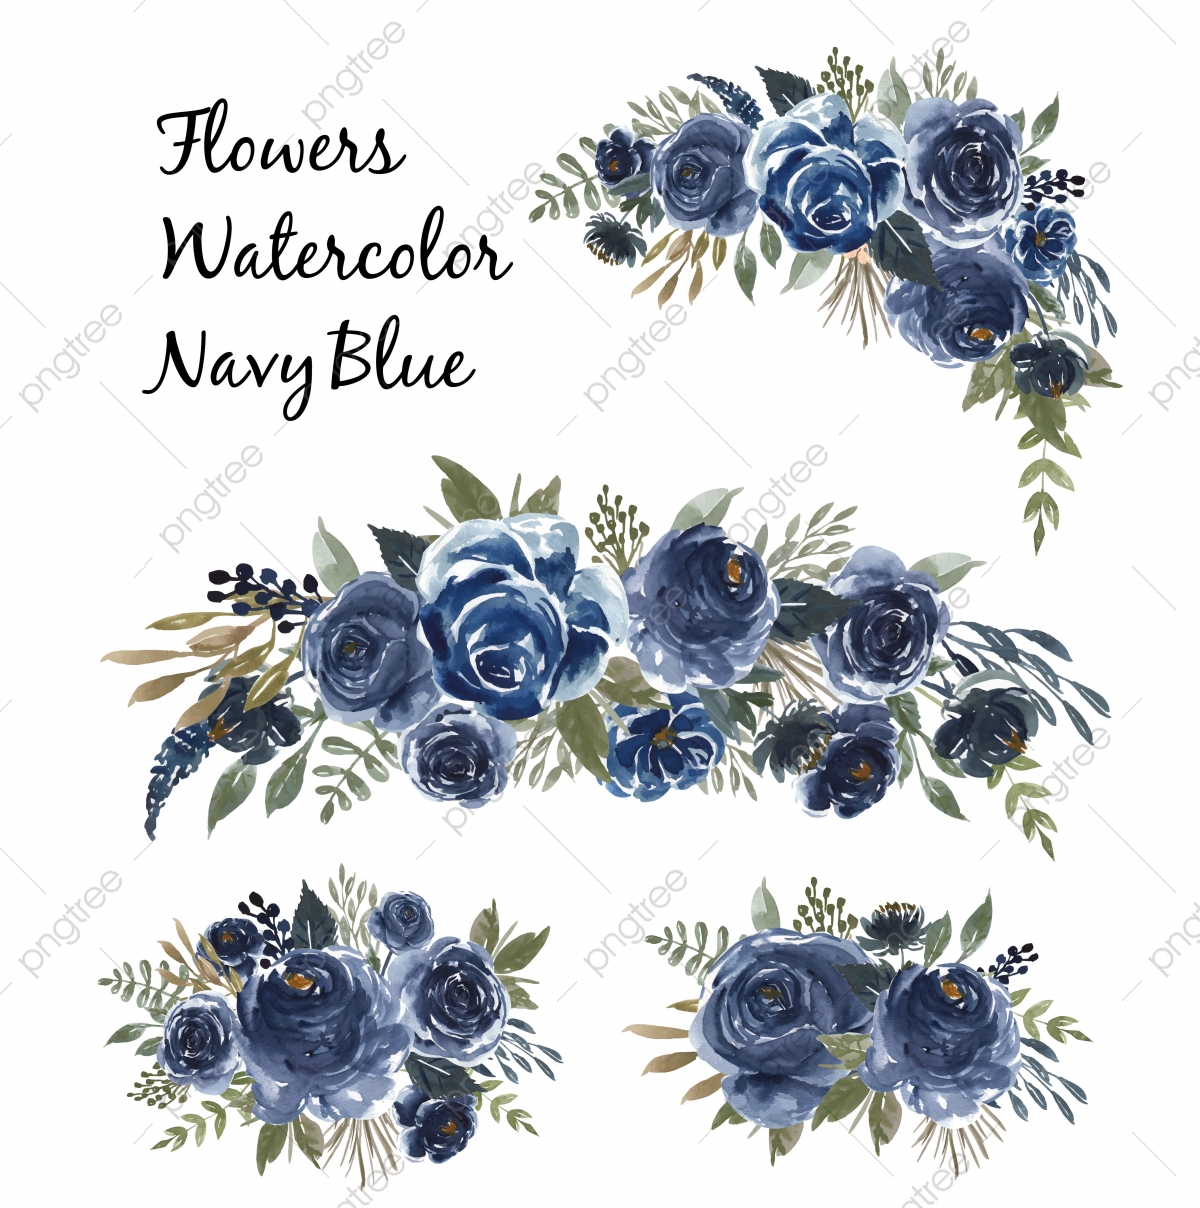 Watercolor Set Of Flower Bouquet Navy Blue Floral Watercolor